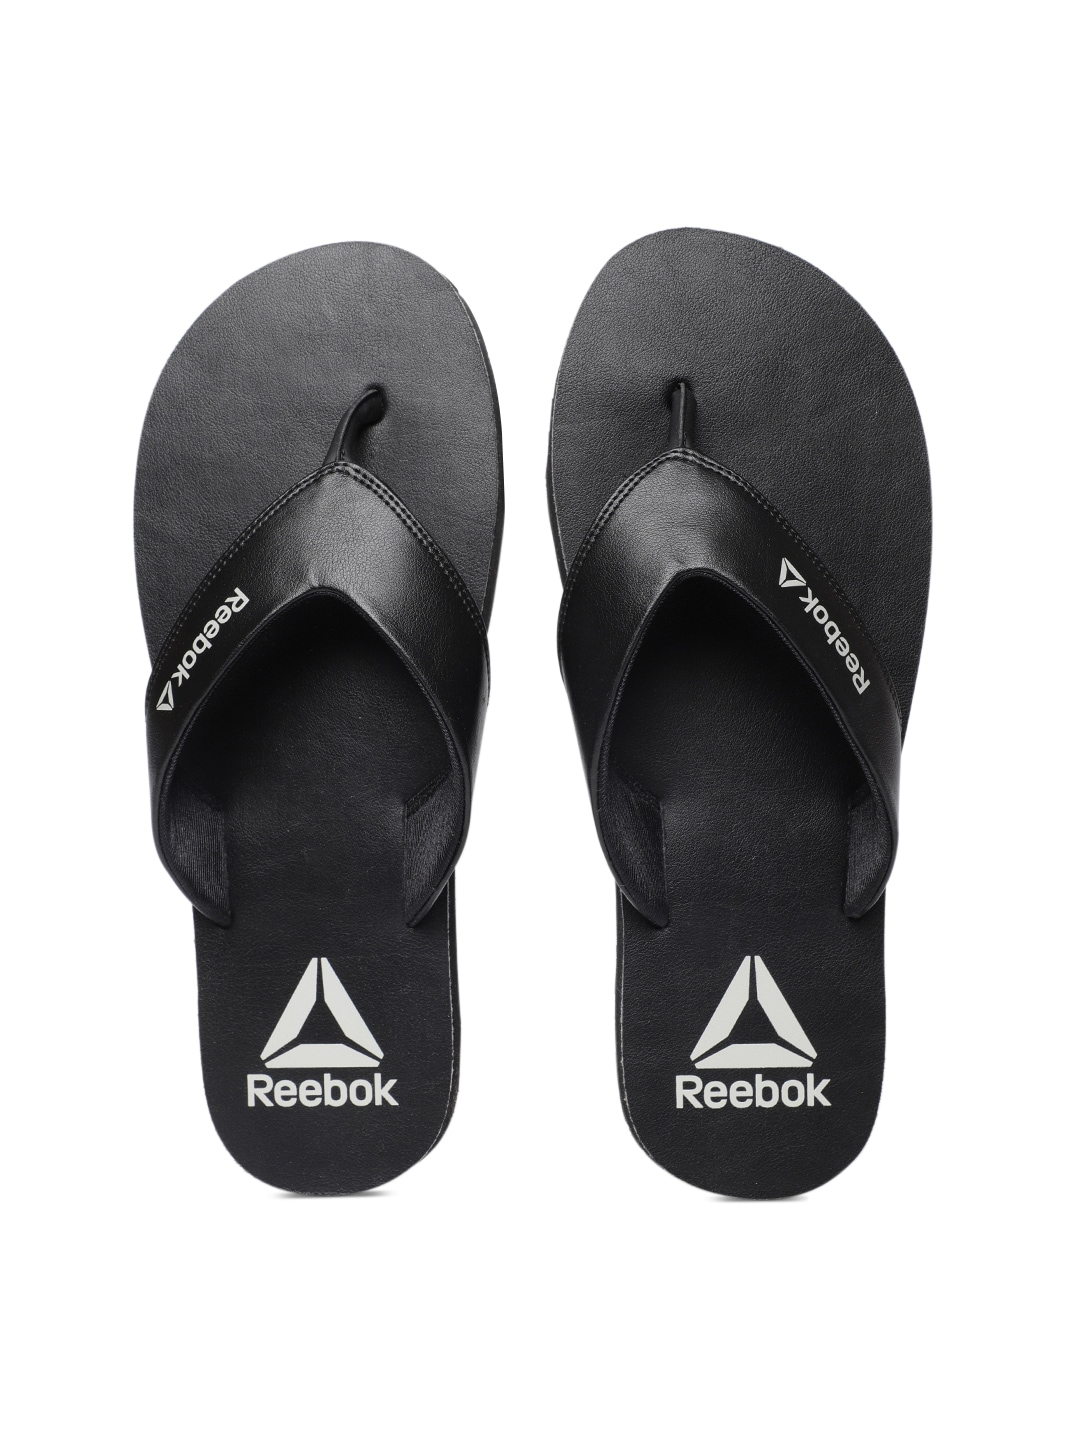 2d6fb5fd3bb01b Reebok Men Black Solid Thong Flip-Flops